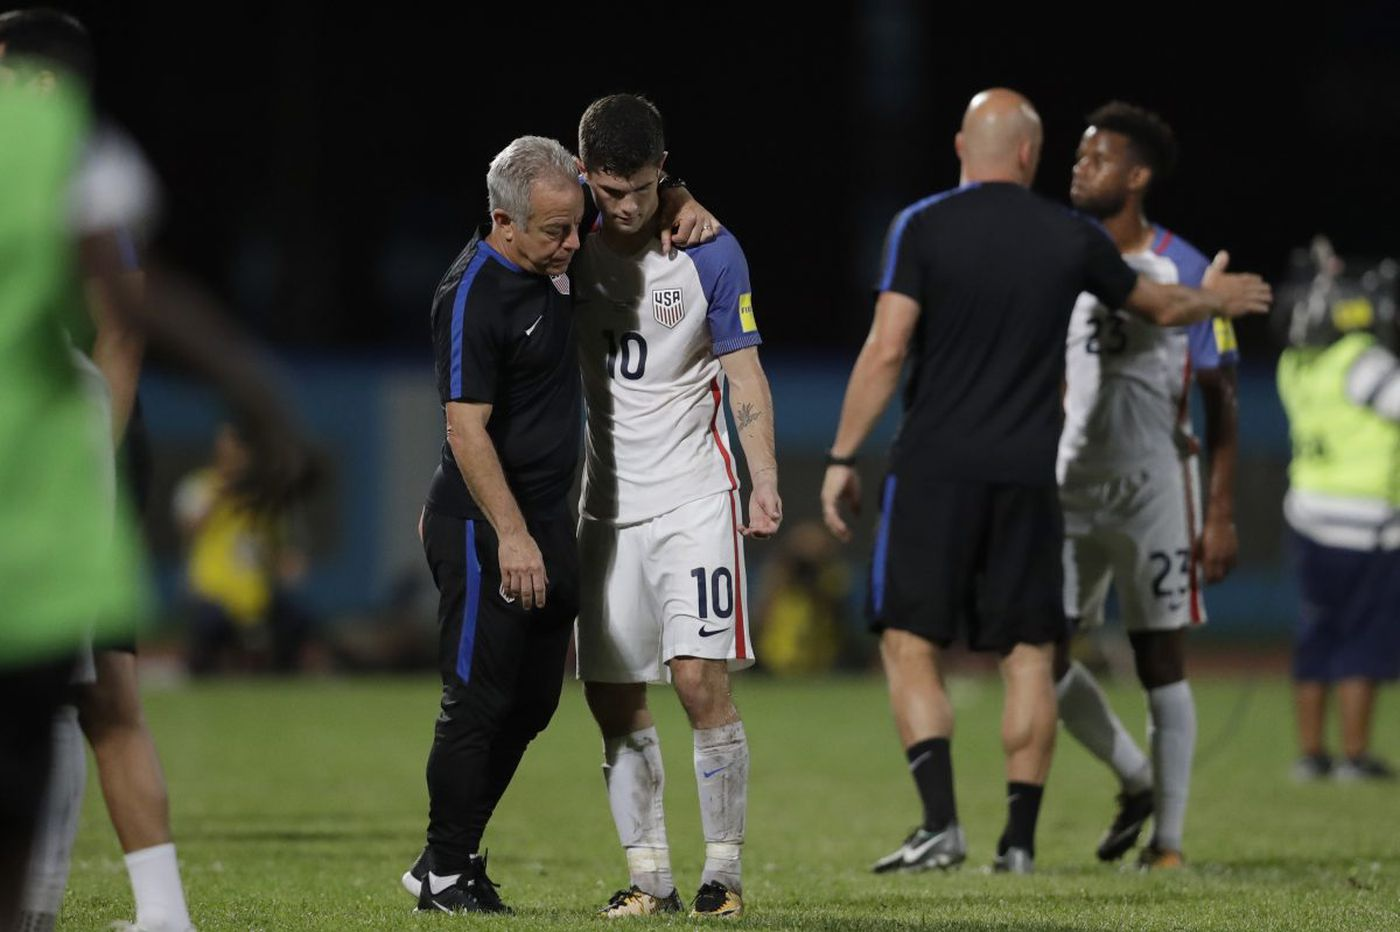 U.S. men's soccer team fails to qualify for 2018 World Cup after 2-1 loss at Trinidad & Tobago